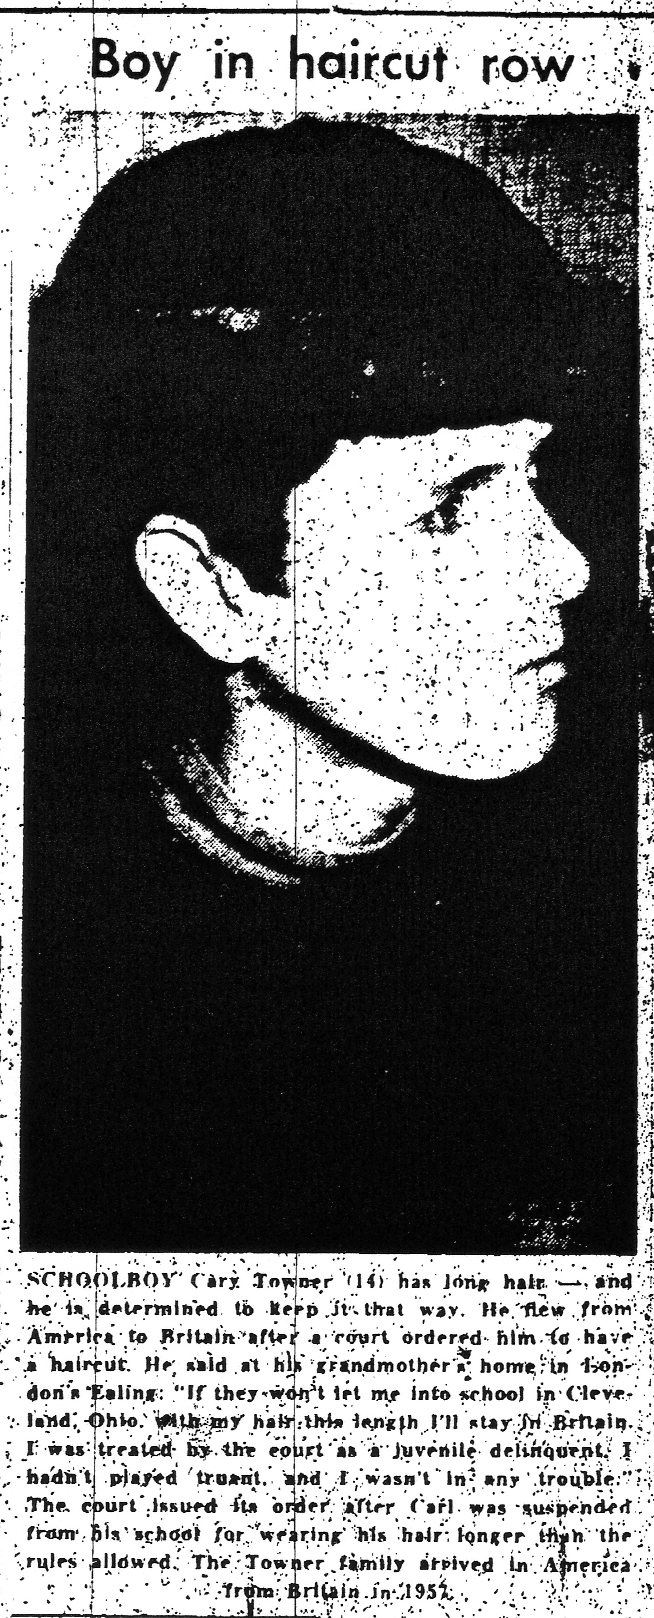 Boy In Haircut Row - Taranaki Herald (29-11-1967)